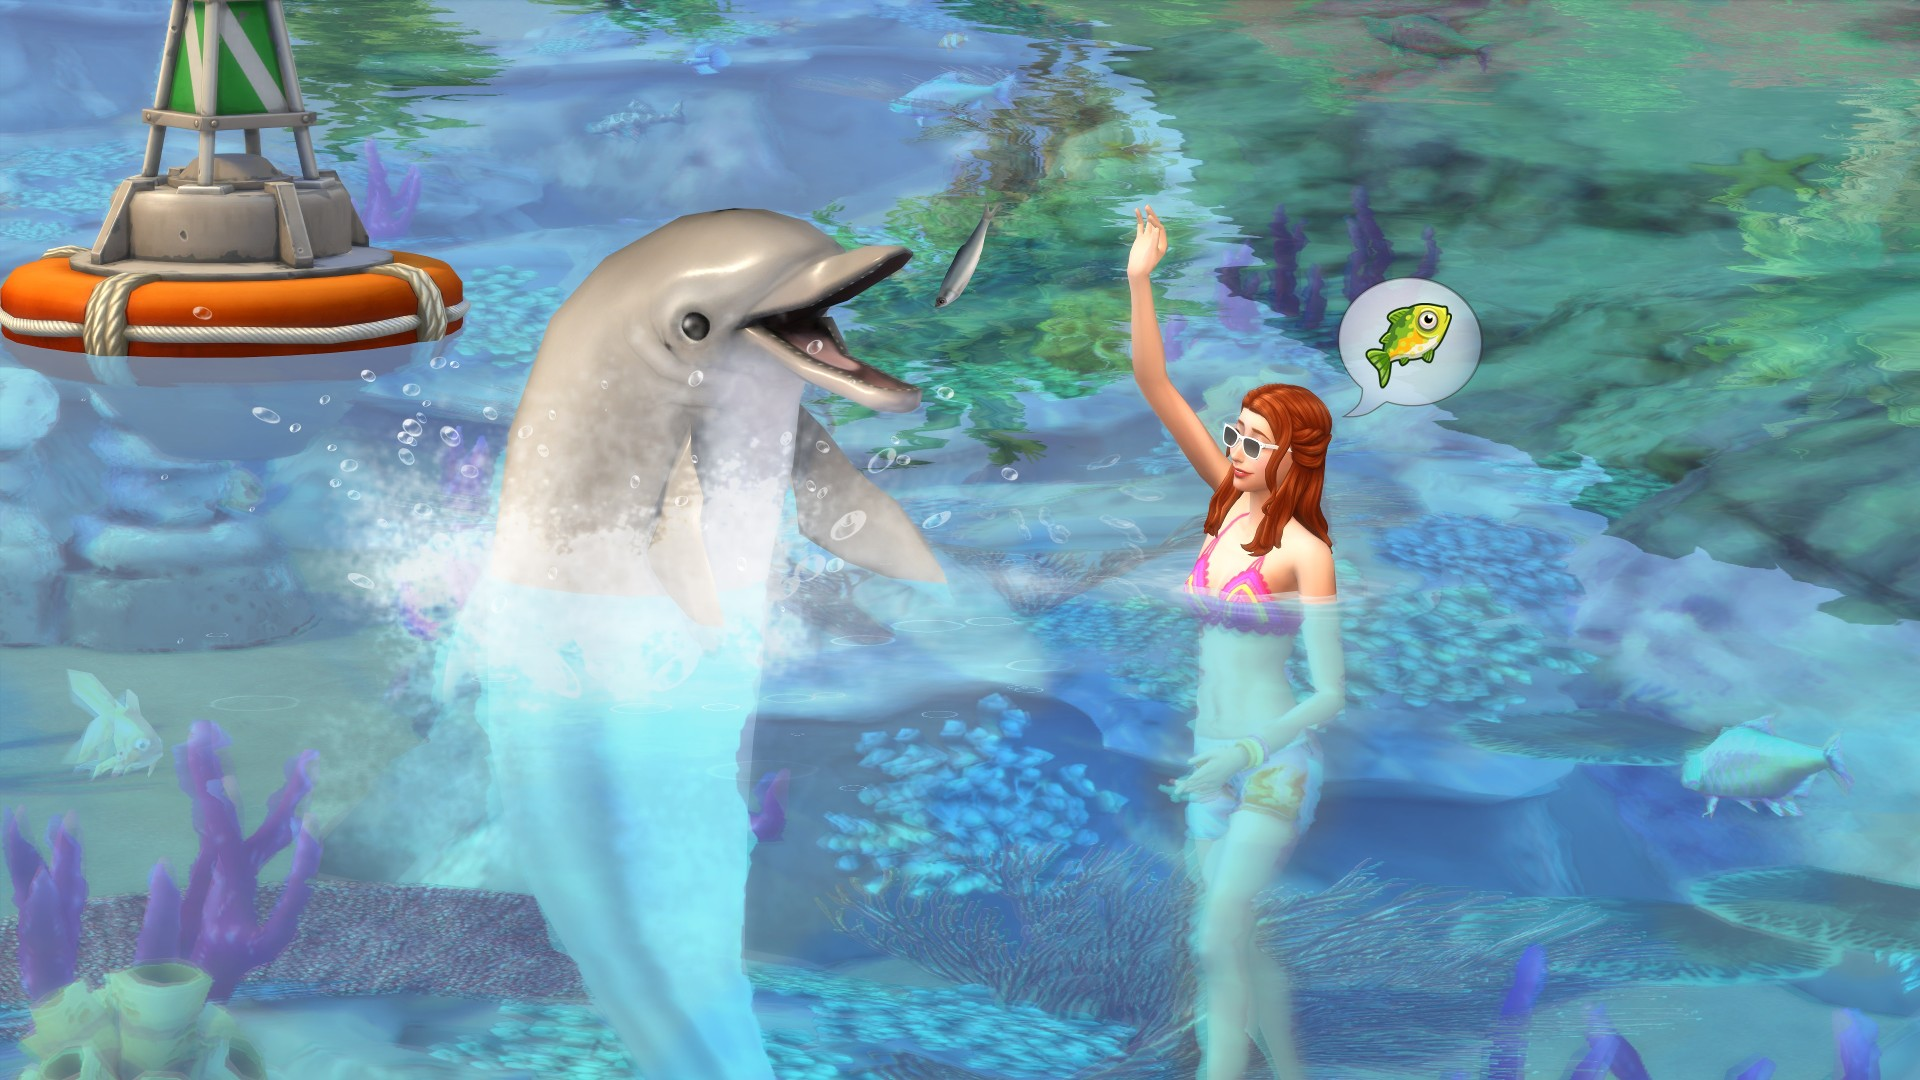 A woman talks to a dolphin in the Sims 4.